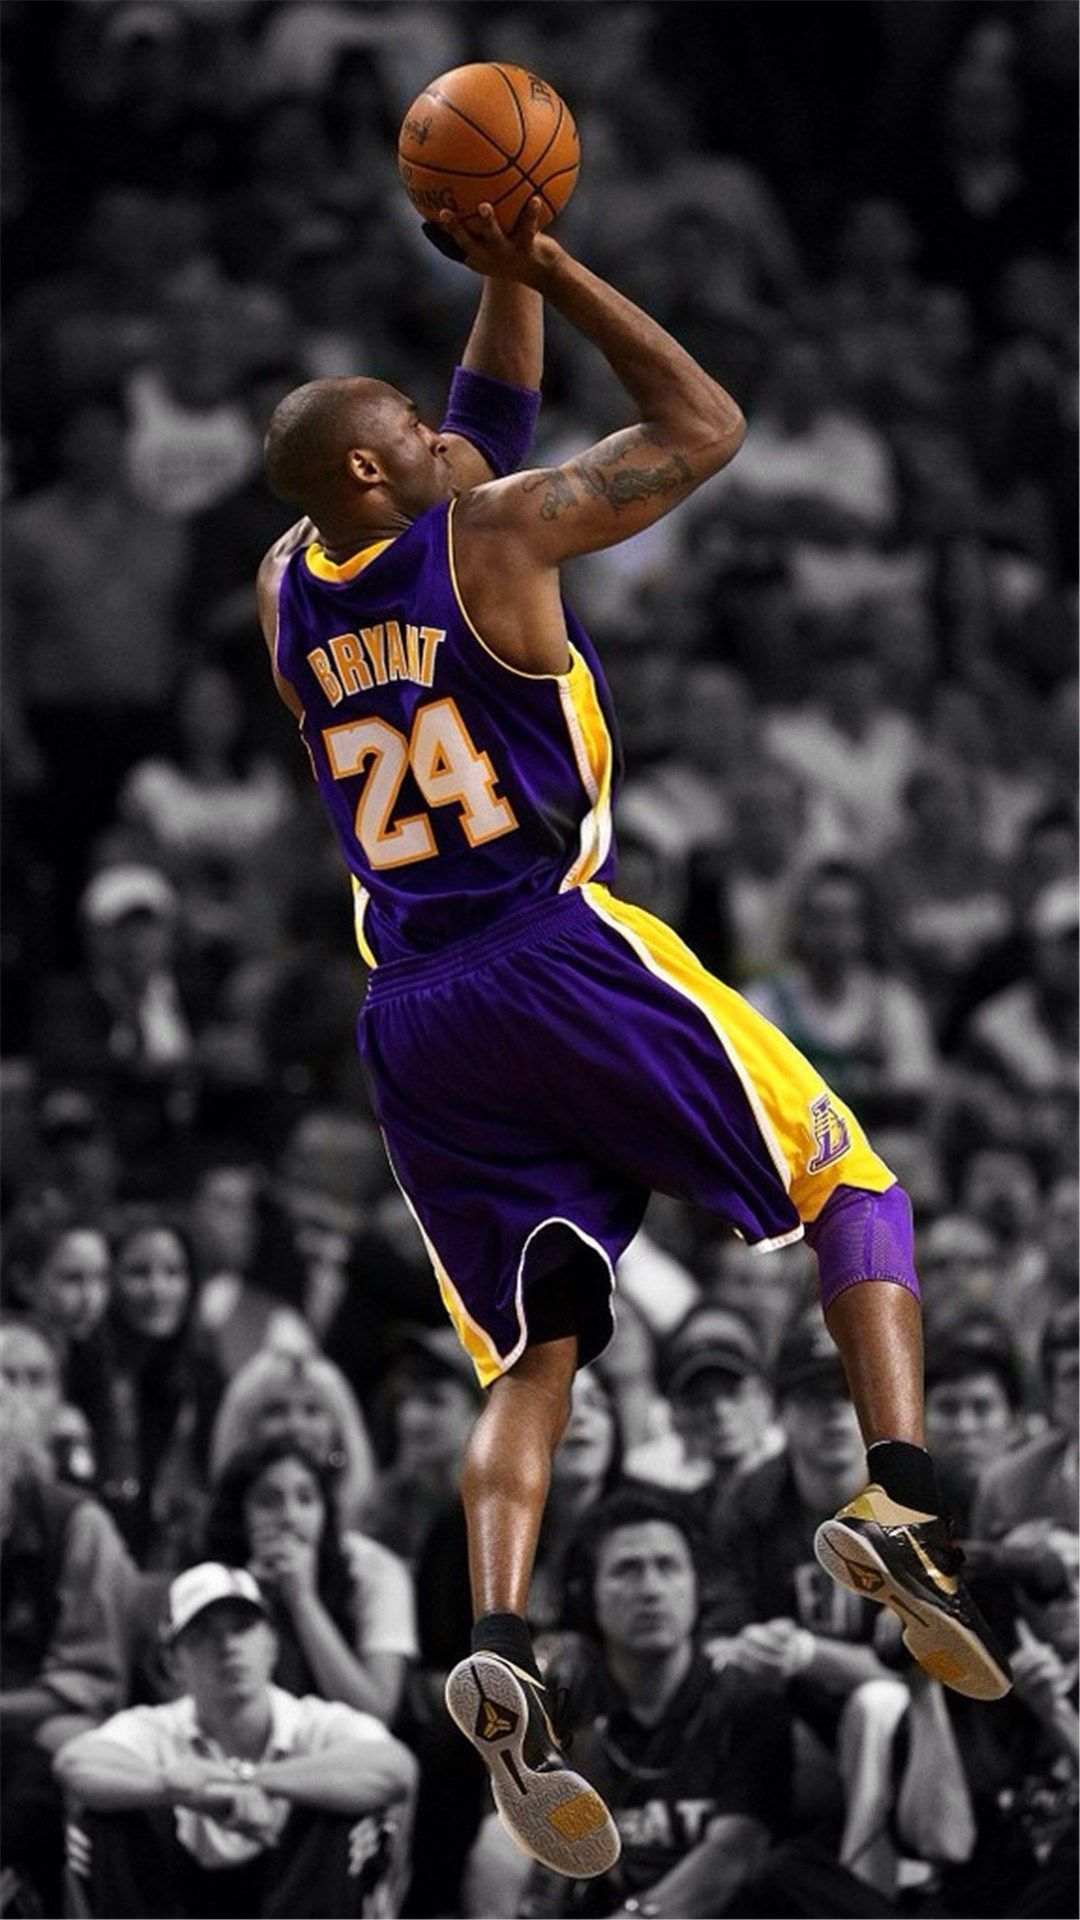 Nba Wallpapers For Iphone 39 Wallpapers Hd Wallpapers Nba Nba Wallpapers In 2020 Kobe Bryant Wallpaper Kobe Bryant Dunk Kobe Bryant Black Mamba